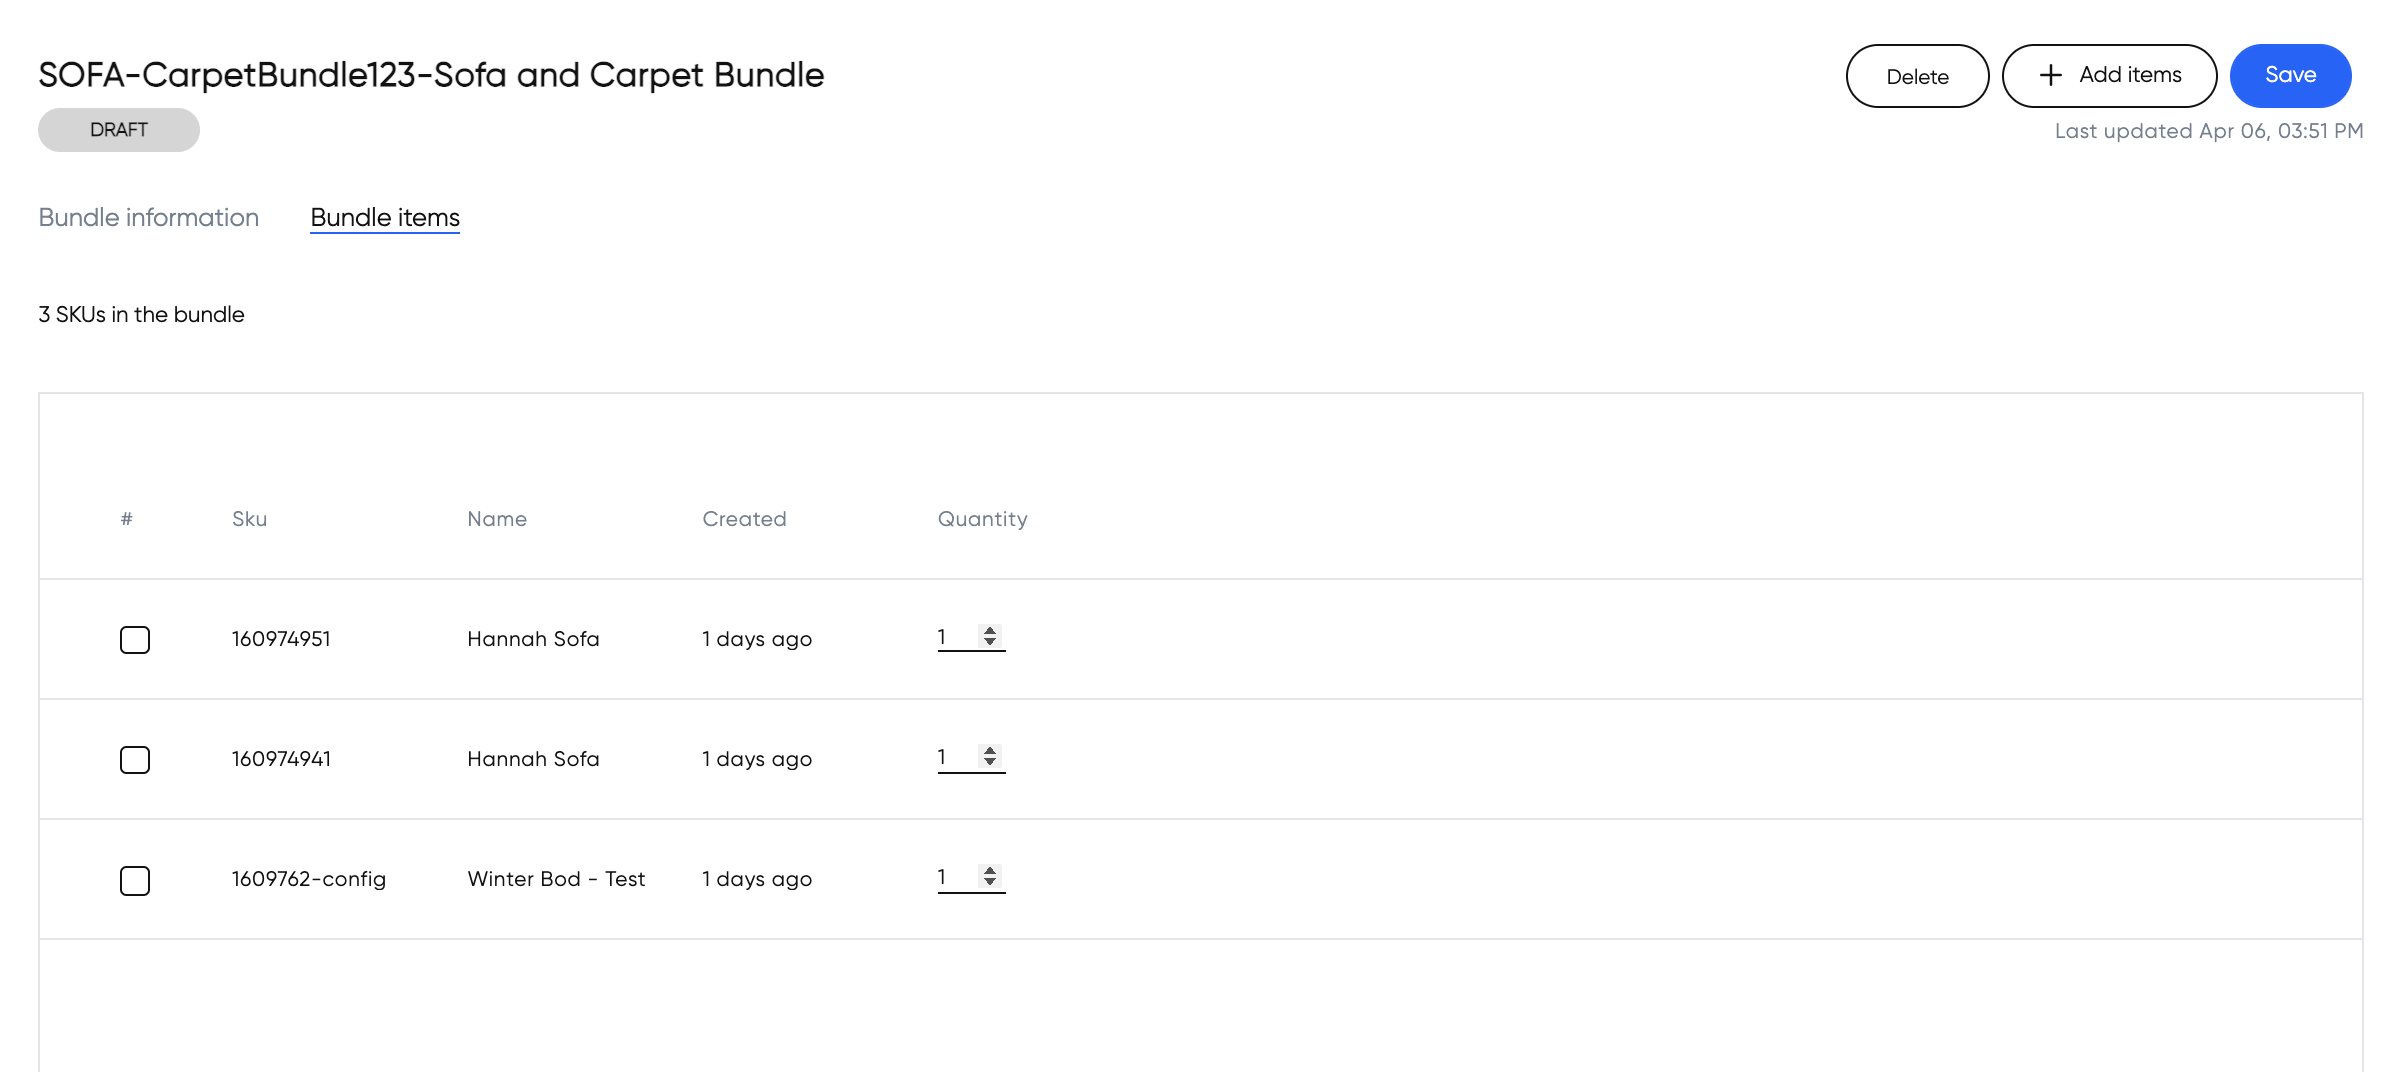 List of items added to a bundle